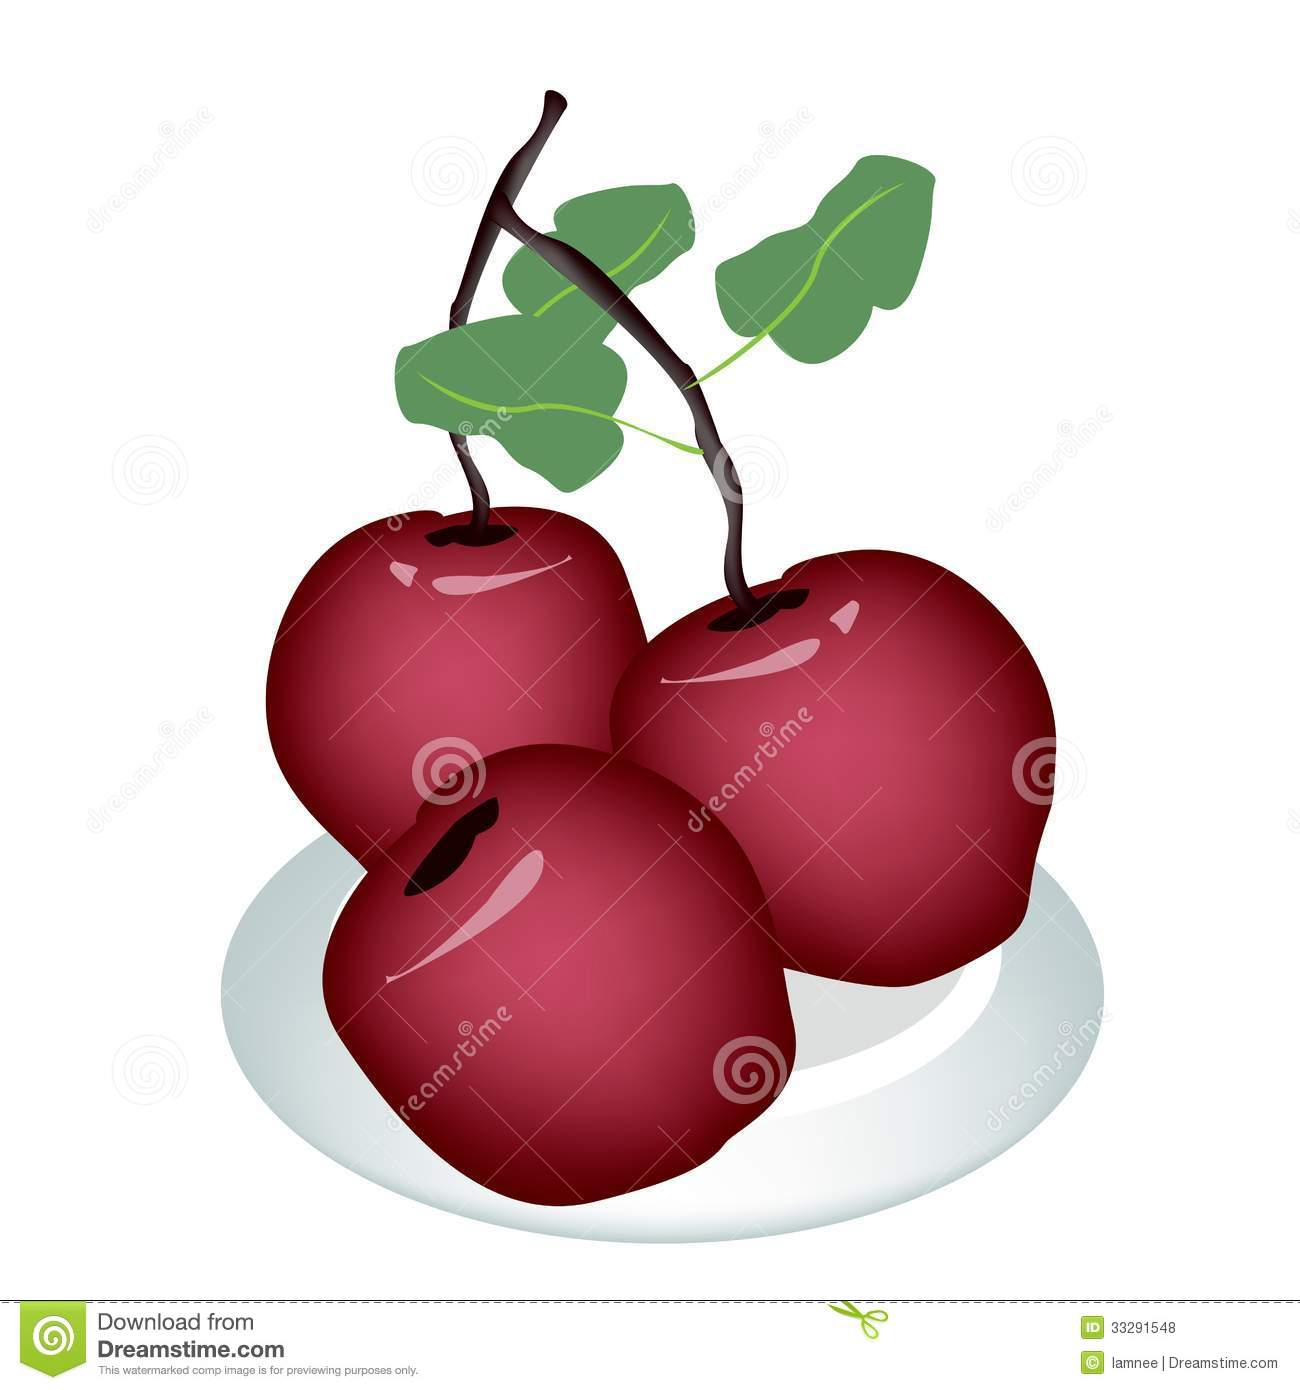 delicious green apple illustration - photo #11